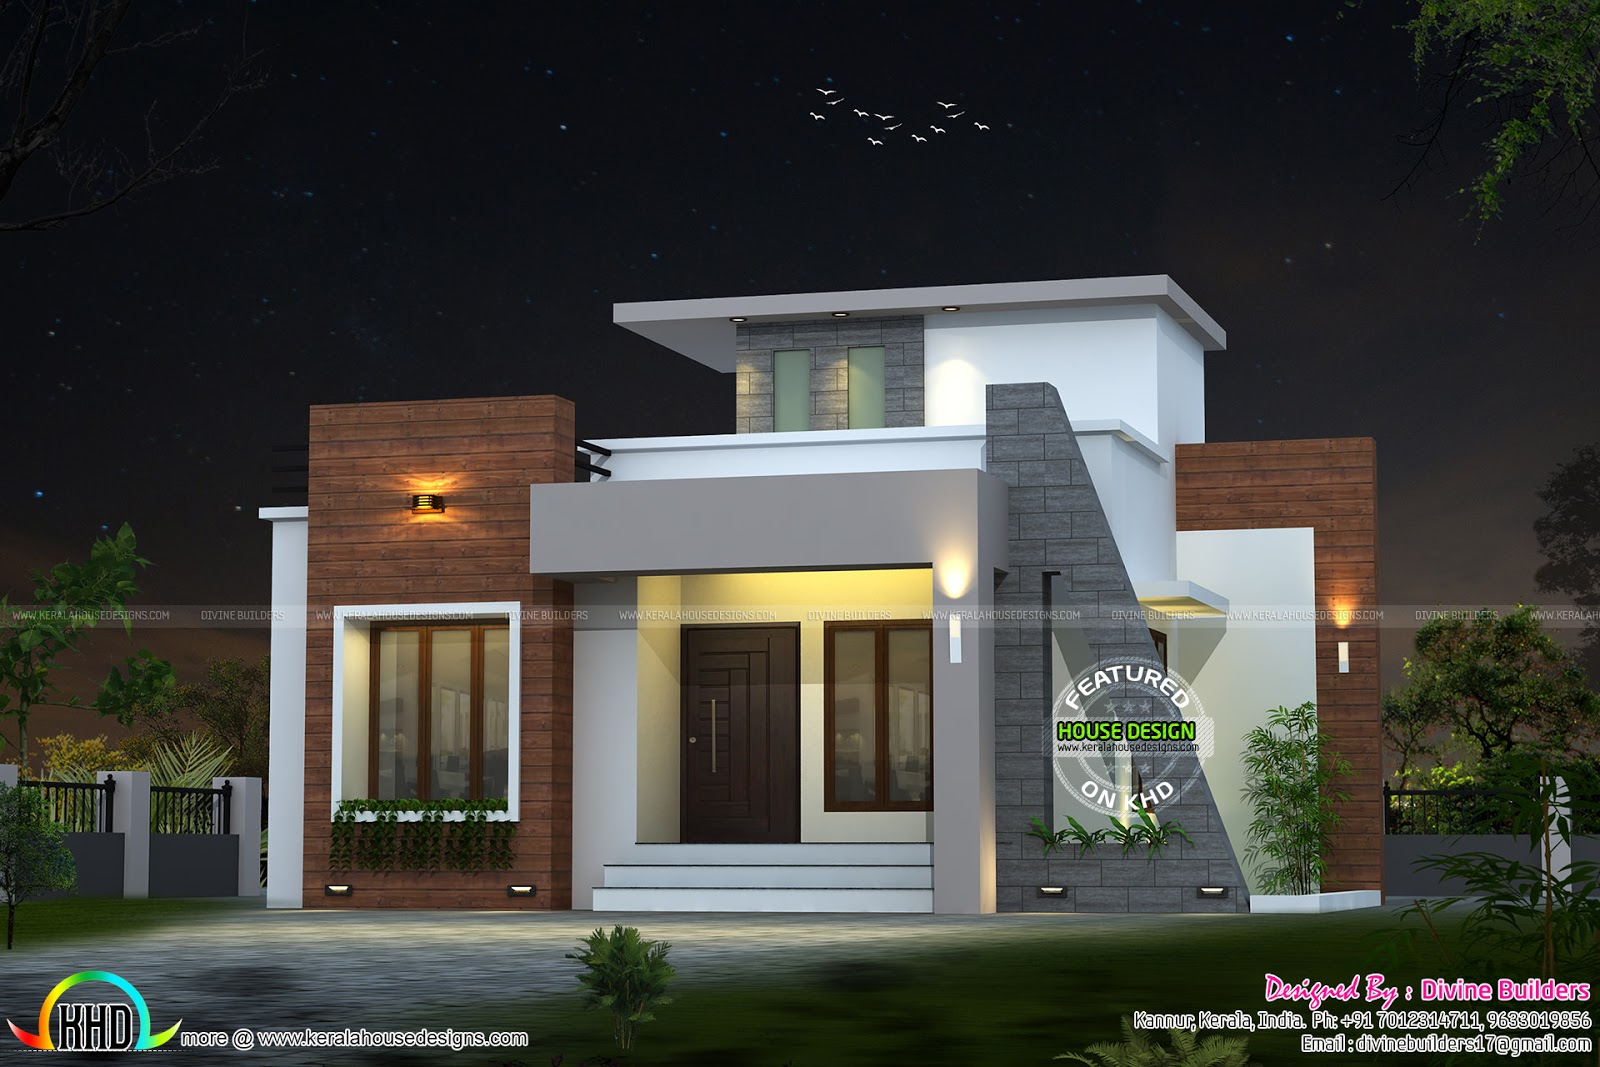 22 lakhs cost estimated house plan kerala home design for Small budget house plans in kerala